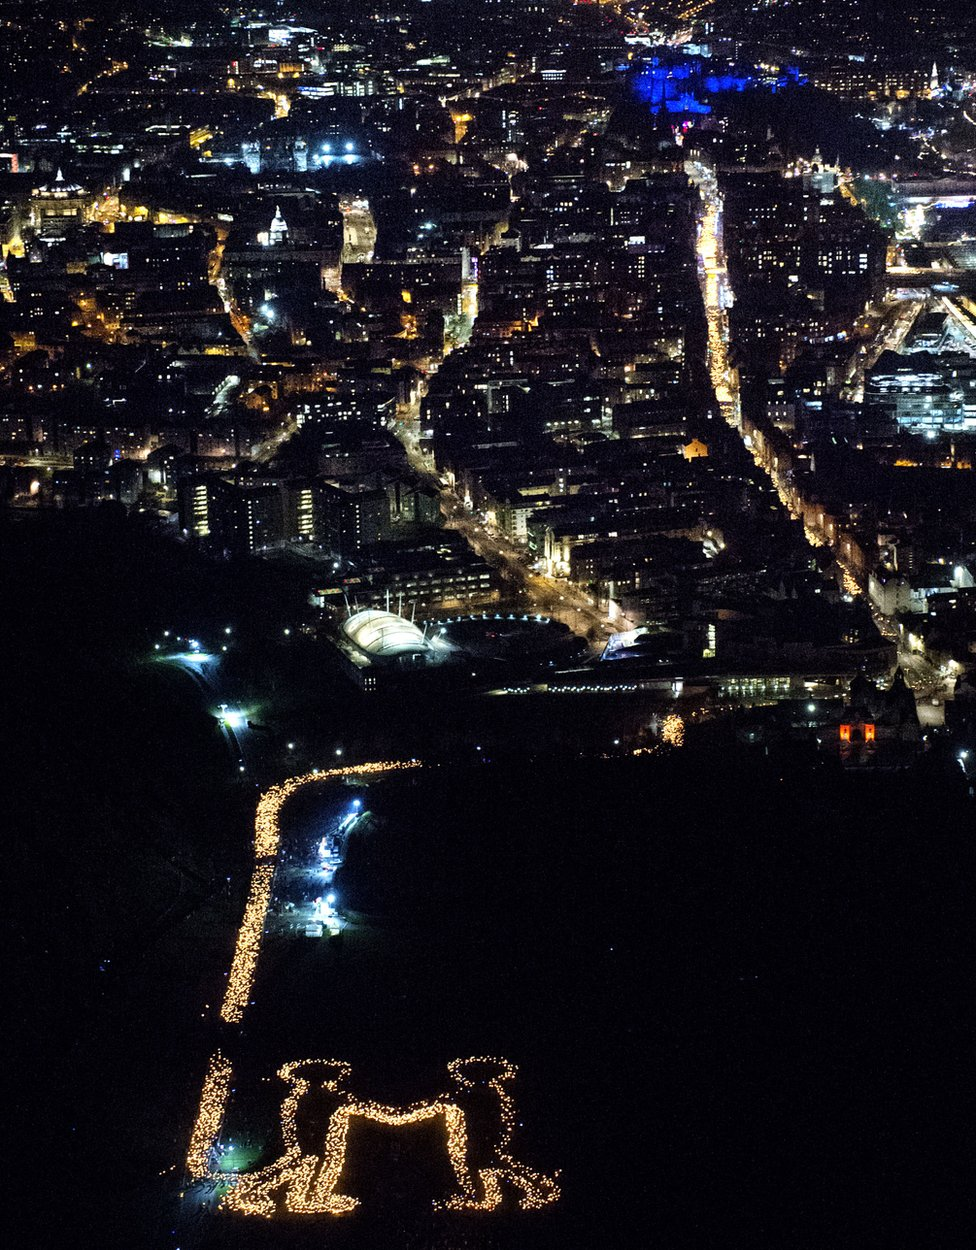 Torchlight procession from the air